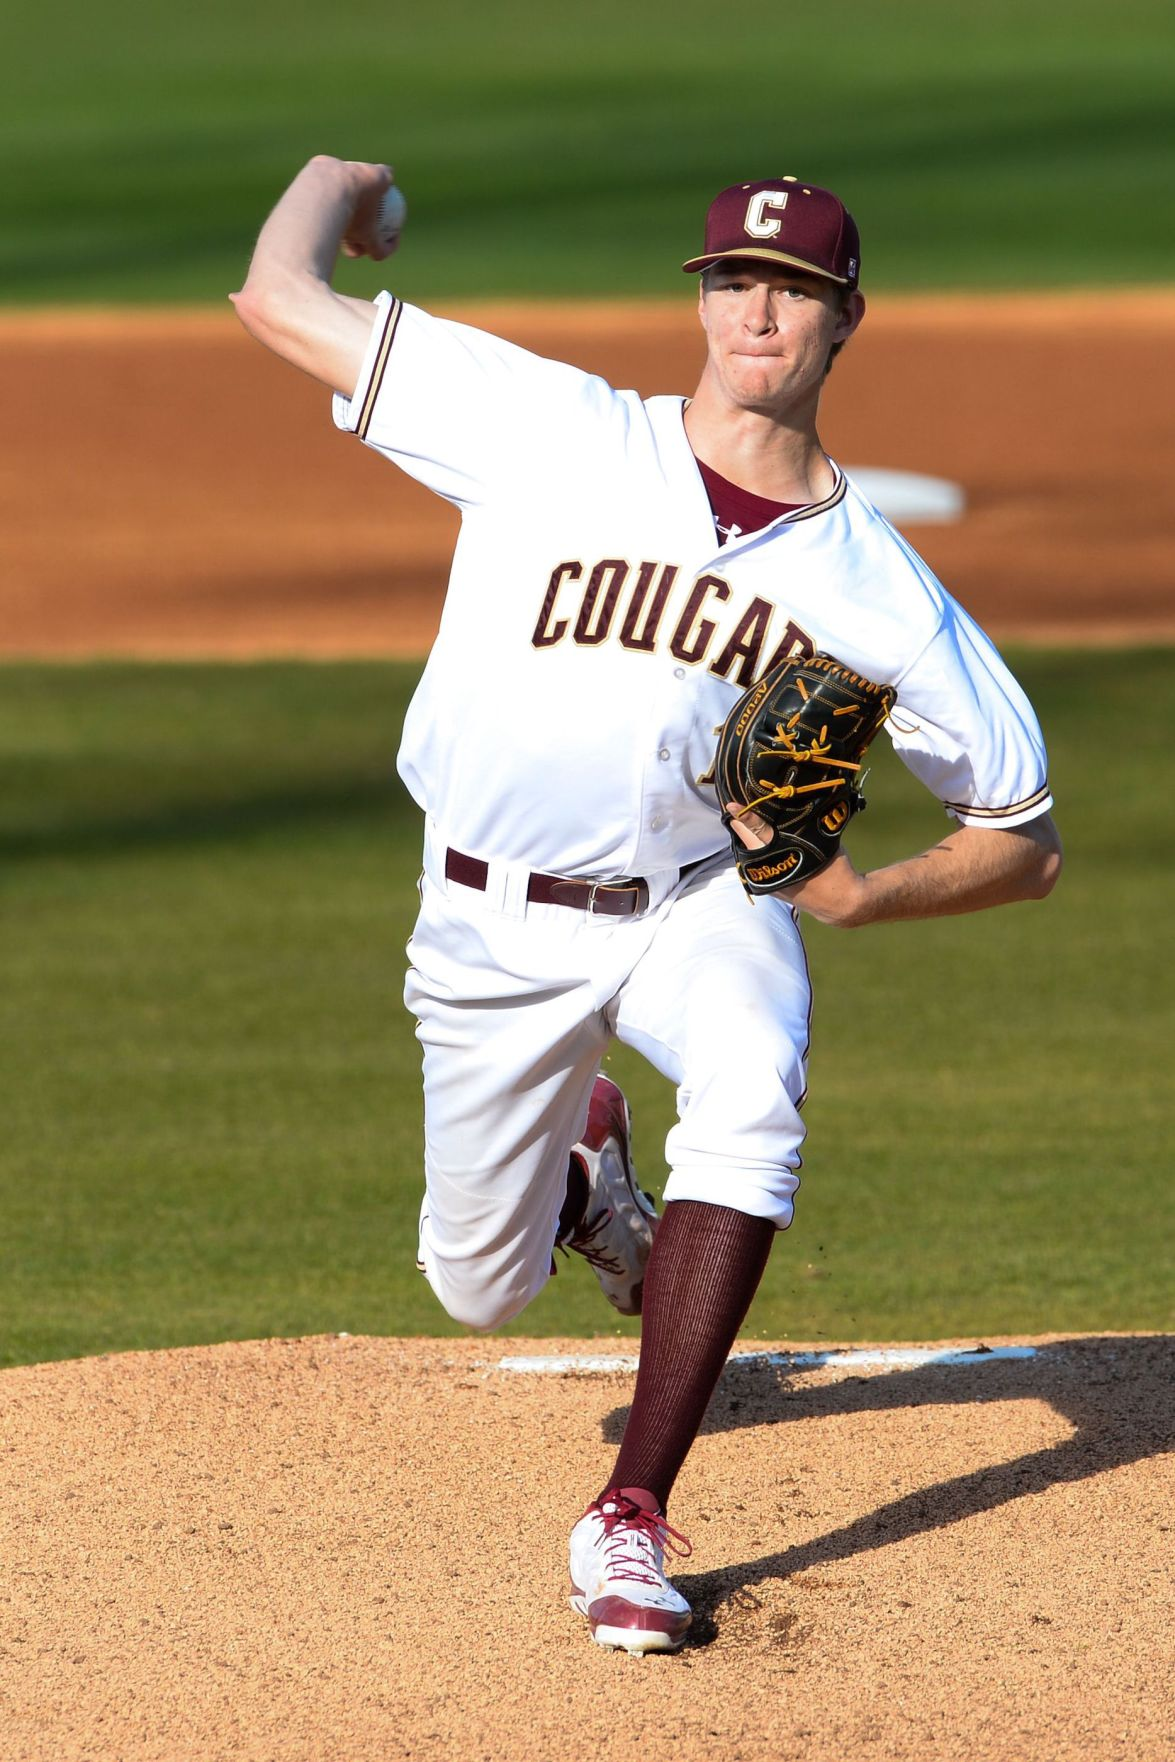 Cougars face Tribe with CAA title on the line